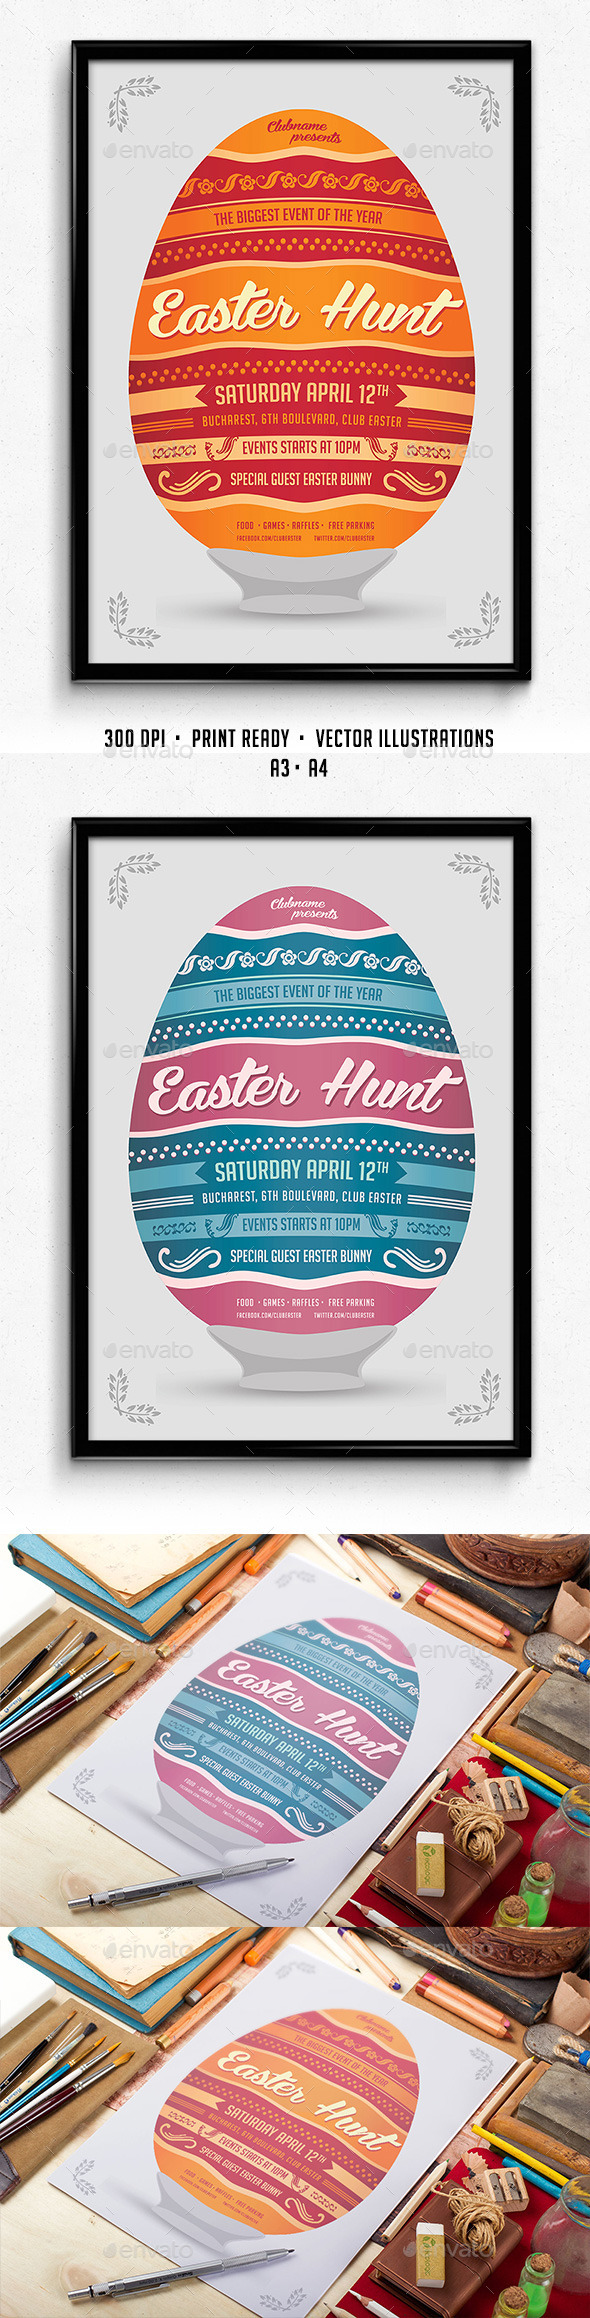 GraphicRiver Easter Hunt Poster 10860288